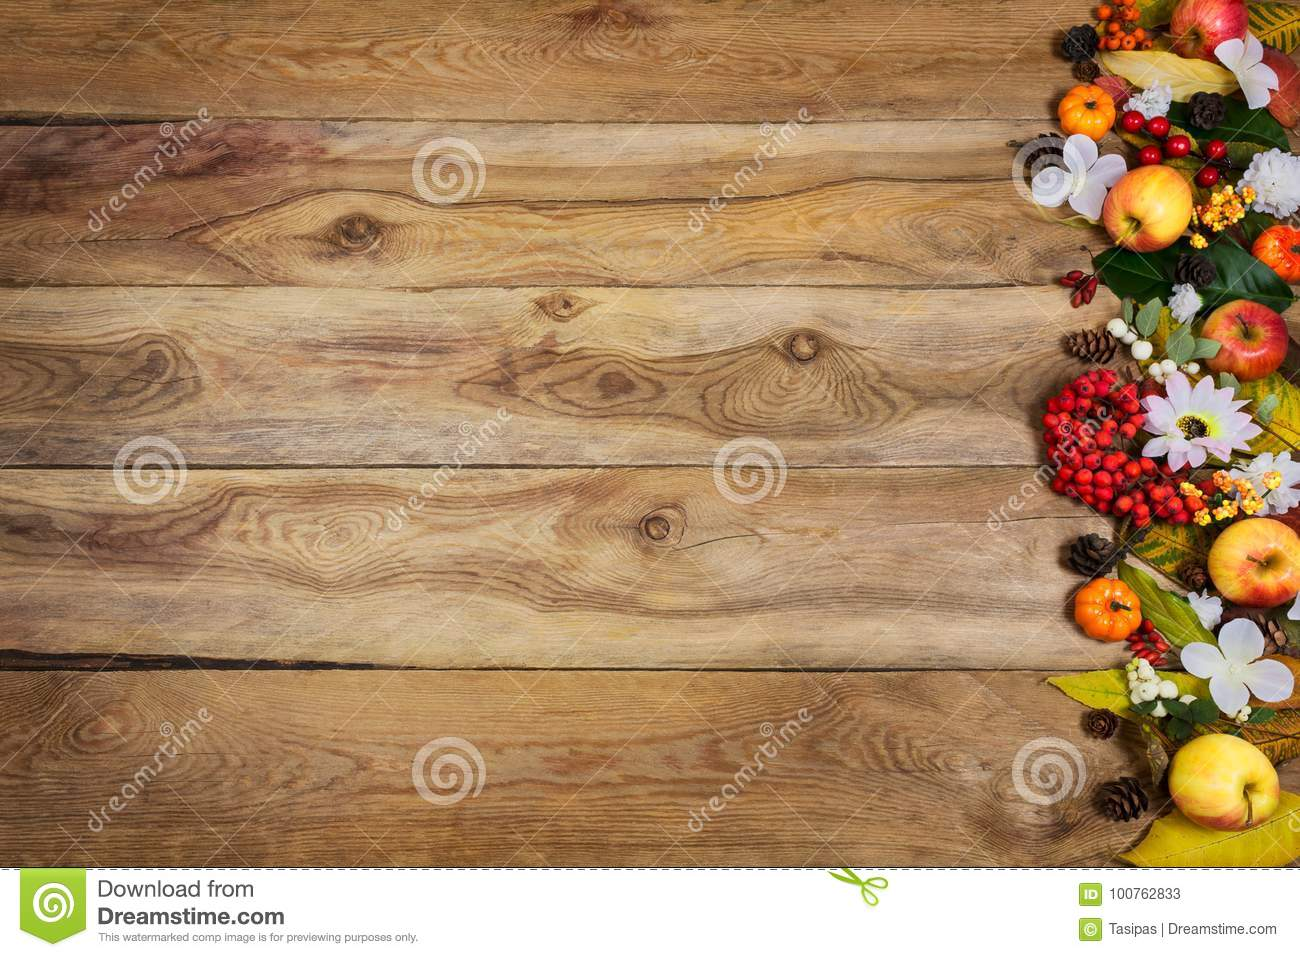 Happy Thanksgiving Greeting Background With Pumpkins Apples Berries Leaves And White Flowers On The Right Side Of Rustic Wooden Table Copy Space